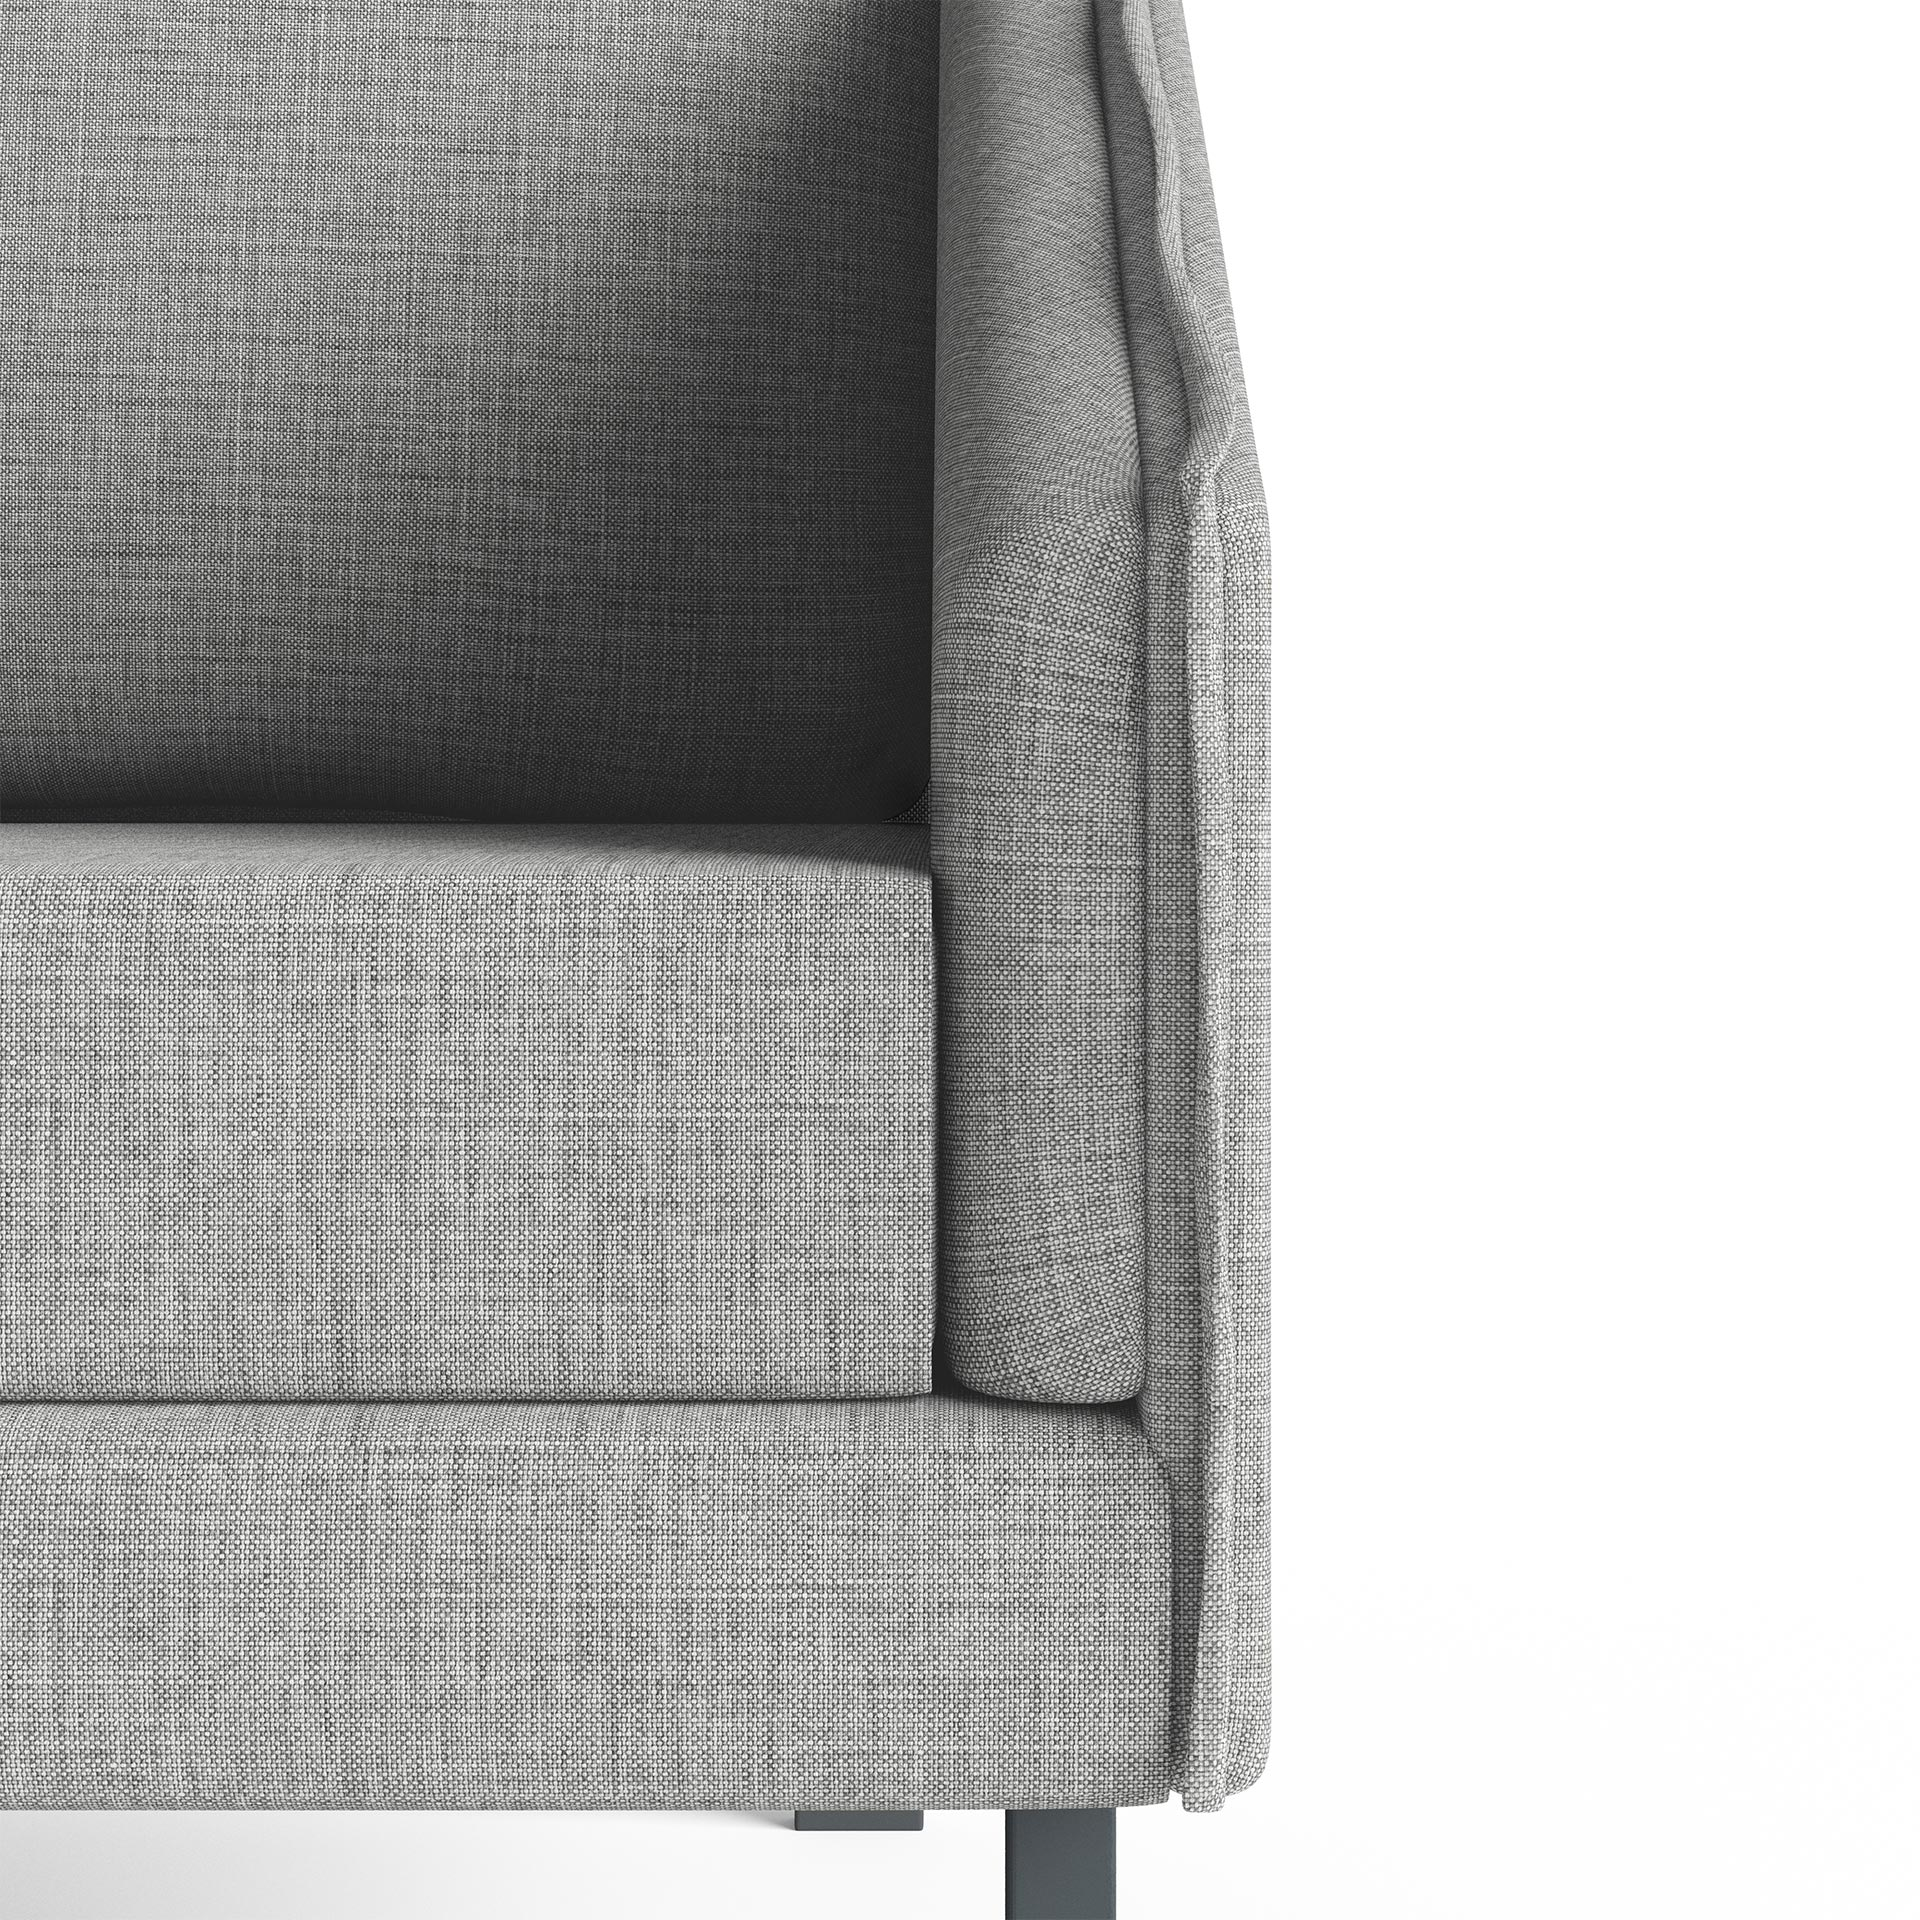 Tracey Highly Detailed Close Up Chair Light Grey